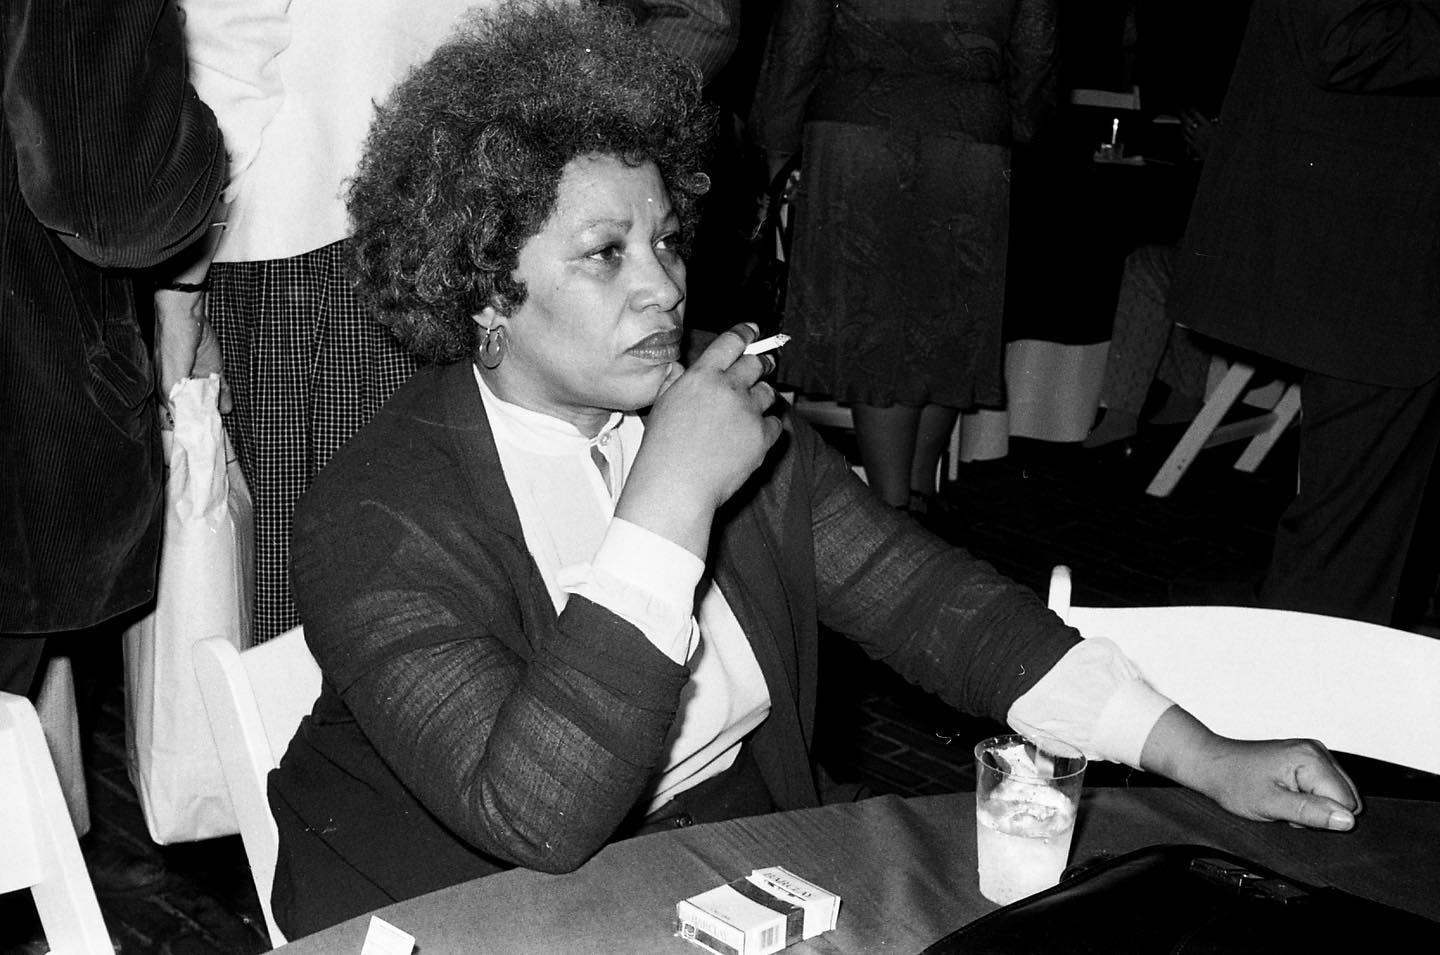 "#Onthisday in 1931, American author and professor Toni Morrison was born in Lorain, Ohio. In 1949, Morrison attended the historically Black college Howard University in Washington, DC, where she experience racially segregated buses and restaurants for the first time. In 1955, she went on to get her Master of Arts from Cornell, and began teaching shortly after. In 1965, Morrison became an editor for Random House in Syracuse, and was then transferred to the New York City offices, where she became the first black woman senior editor in the fiction department; her role allowed her to bring Black literature into the mainstream. Morrison began spending more time on developing her own writing and in 1970, her first book, ""The Bluest Eye,"" was published. In 1975, ""Sula,"" her second book, was published and was nominated for a National Book Award. She went on to write many books including ""Tar Baby"" and ""Song of Solomon,"" which won a National Book Critics Award. In 1987, Morrison published another book called ""Beloved,"" which developed into a trilogy, and ultimately won her a Pulitzer Prize for Fiction and the Anisfieled-Wolf Book Award. In 1993, she was awarded the Nobel Prize in Literature and in 2012, Morrison was honored with the Presidential Medal of Freedom by Barack Obama. Her novels address aspects of racism that were often disregarded in mainstream literature, so her rise to becoming a well-known author opened the door for recognition of Black literature and the struggle in which Black folx endure. Her novels are now mainstays in both high school and college classrooms, and she will forever be remembered as a literary revolutionary who paved the way for future Black authors.   Toni Morrison is seen here at the 54th Academy Awards in 1982. #BlackHistoryMonth  📷©️Fred W. McDarrah/MUUS Collection  #muuscollection #blm #blacklivesmatter #blackhistory #tonimorrison #author #poet #sula #smoking #academyawards #photography #photographer #pictureoftheday #picoftheday #photooftheday #documentaryphotography #fredmcdarrah #nyc #newyorkcity #happybirthday #celebrateblackhistory #celebrateblackwomen #bookstagram #femalewriters #thebluesteye #literature #nobelprizewinner"